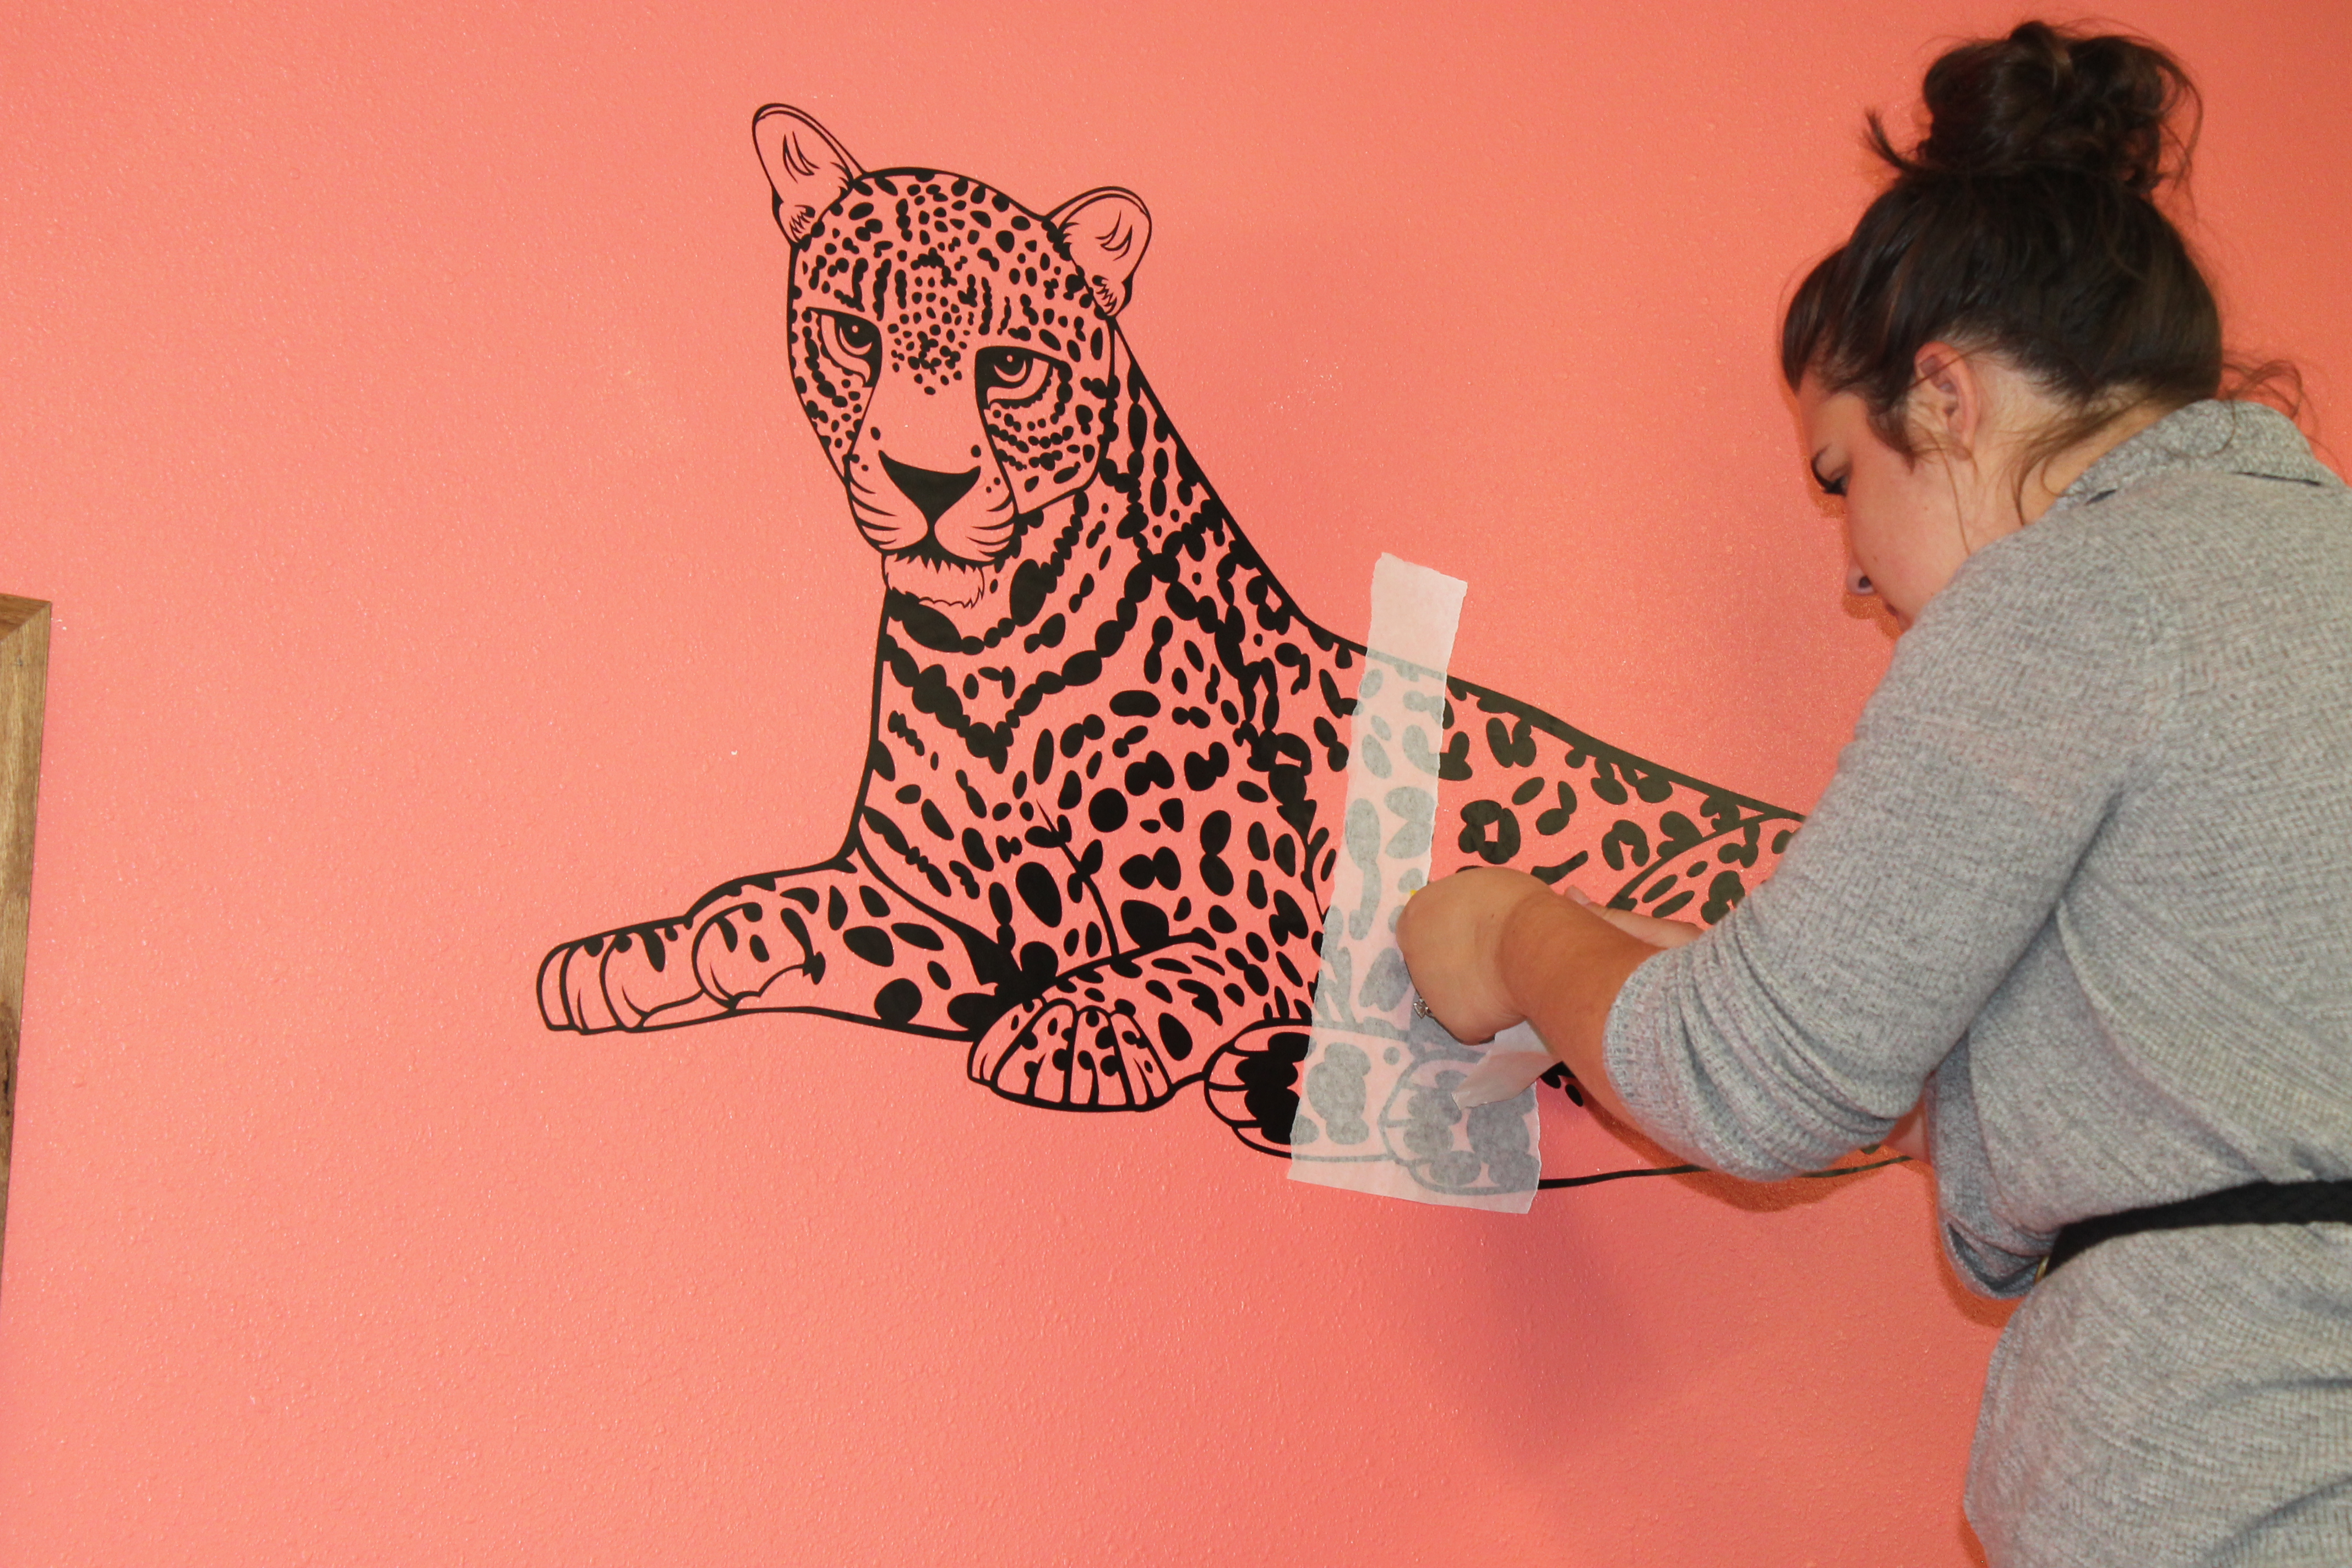 Applying a wall decal